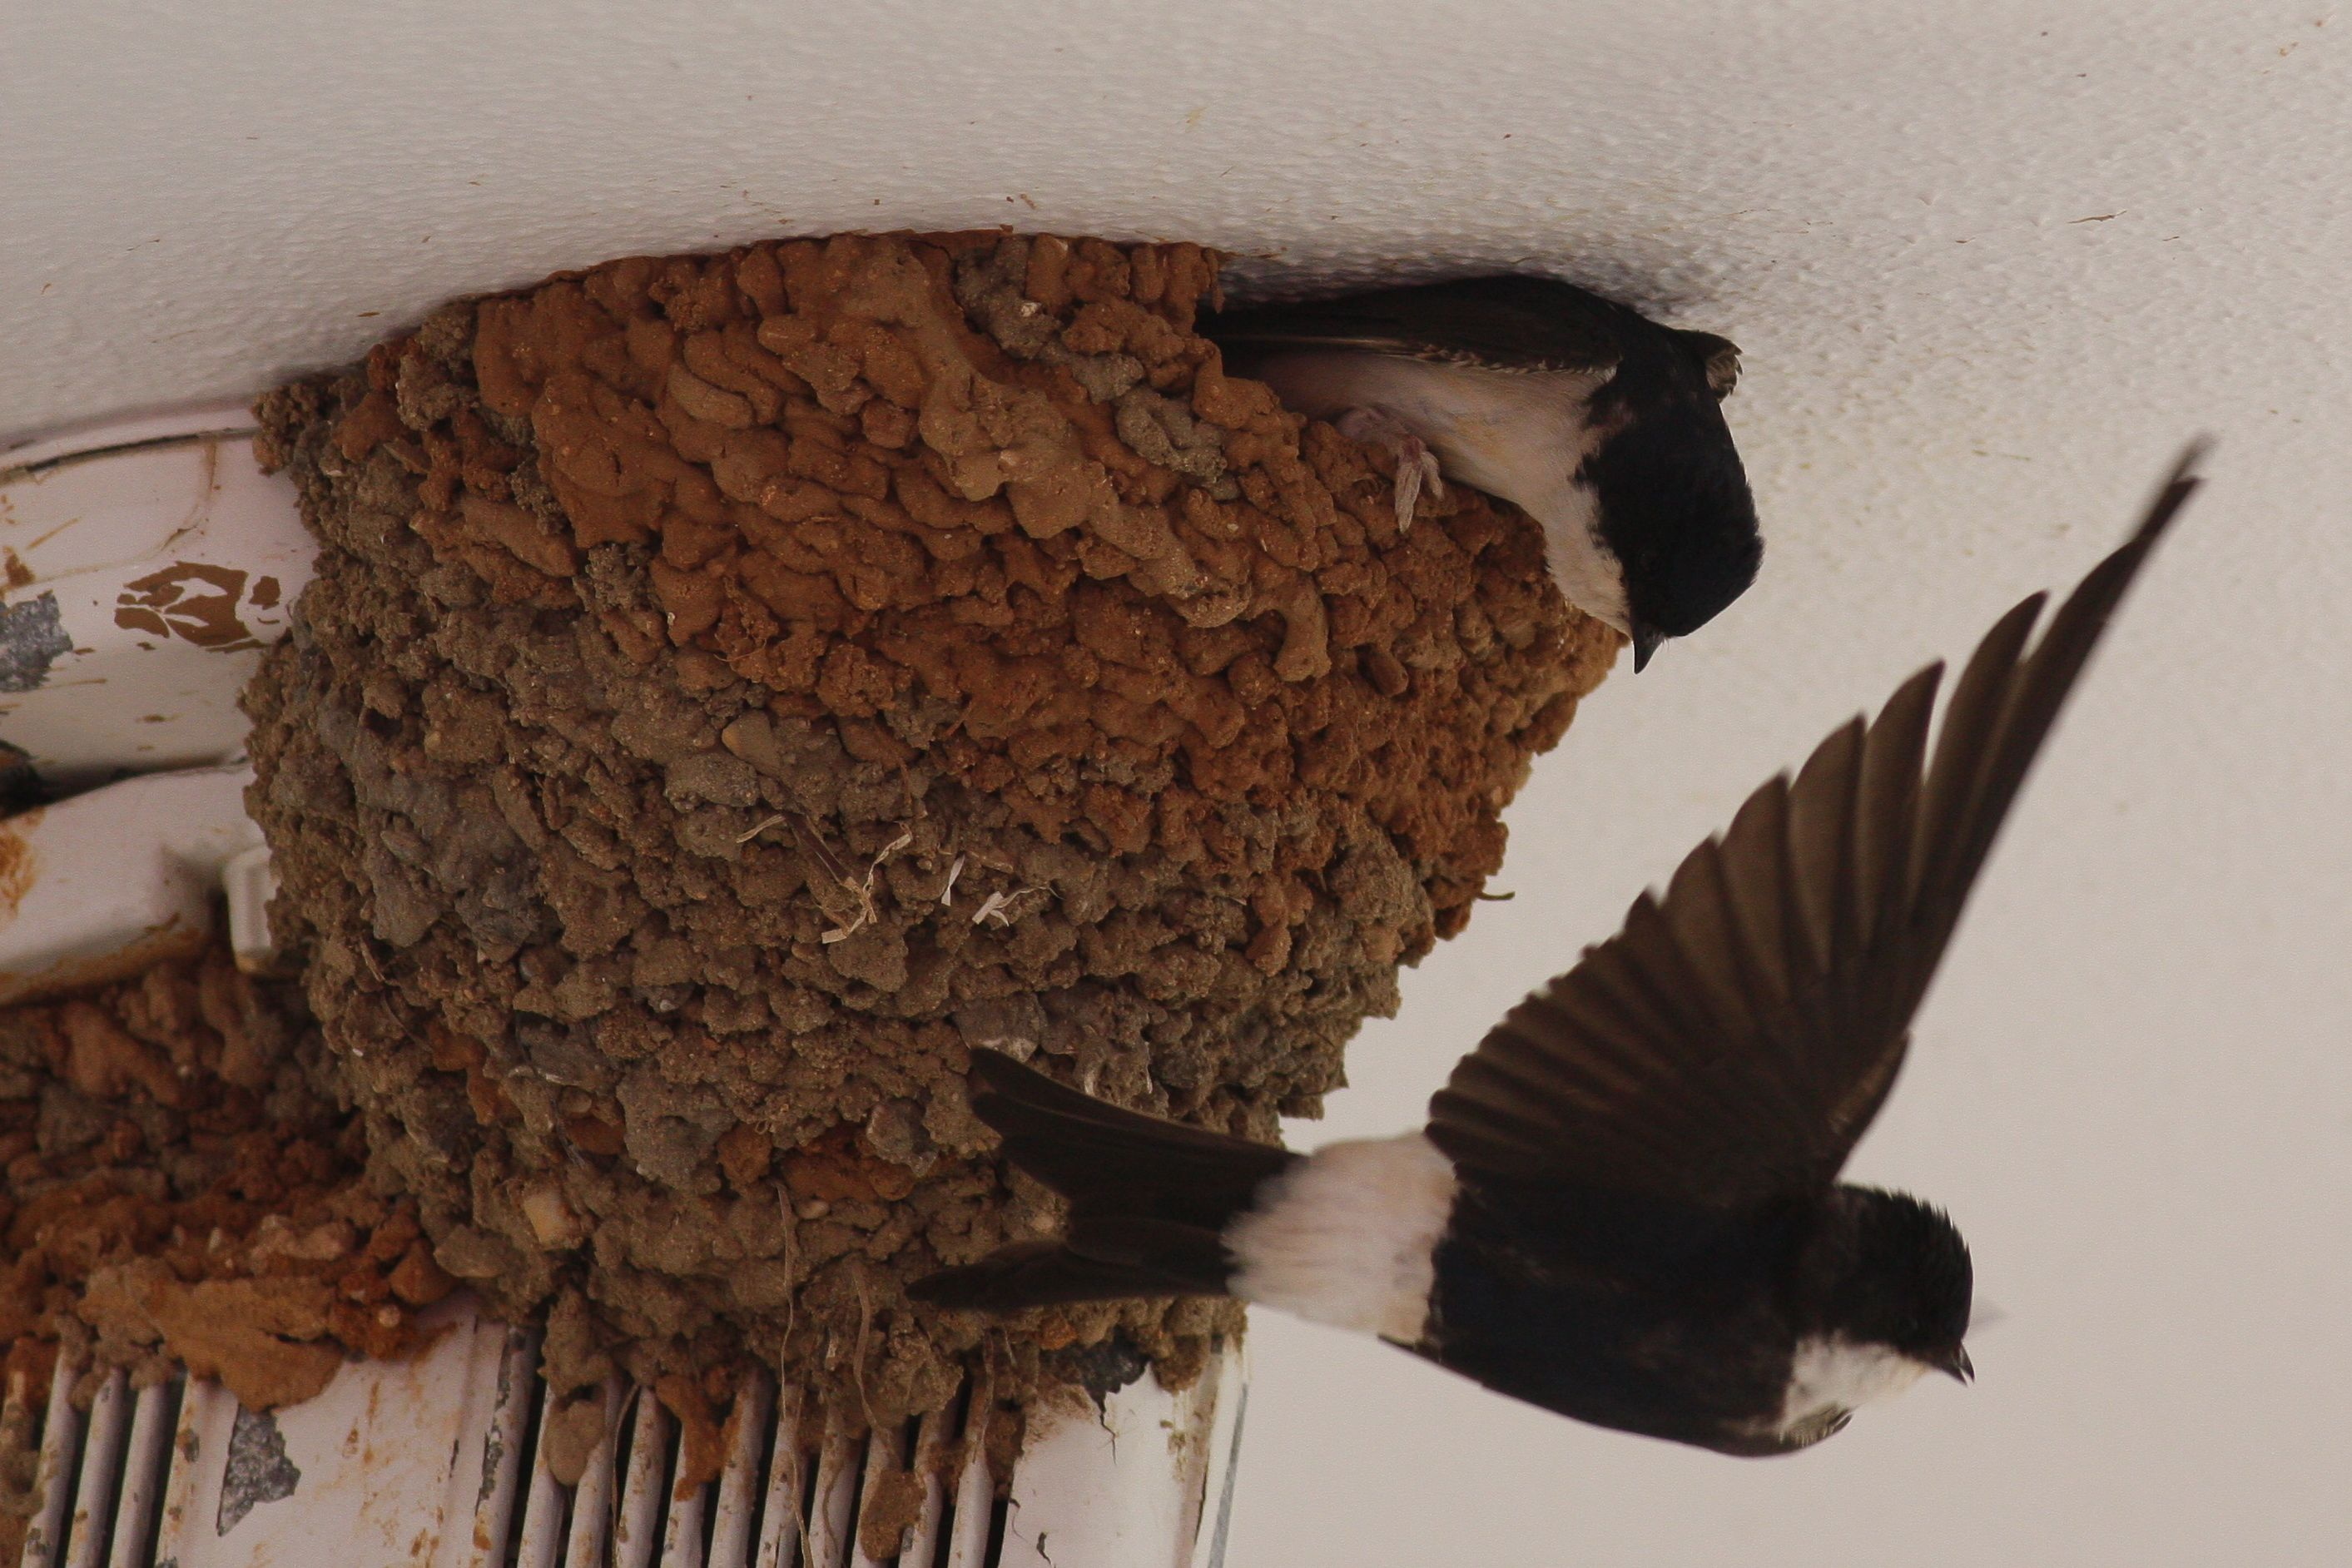 House martin building nest